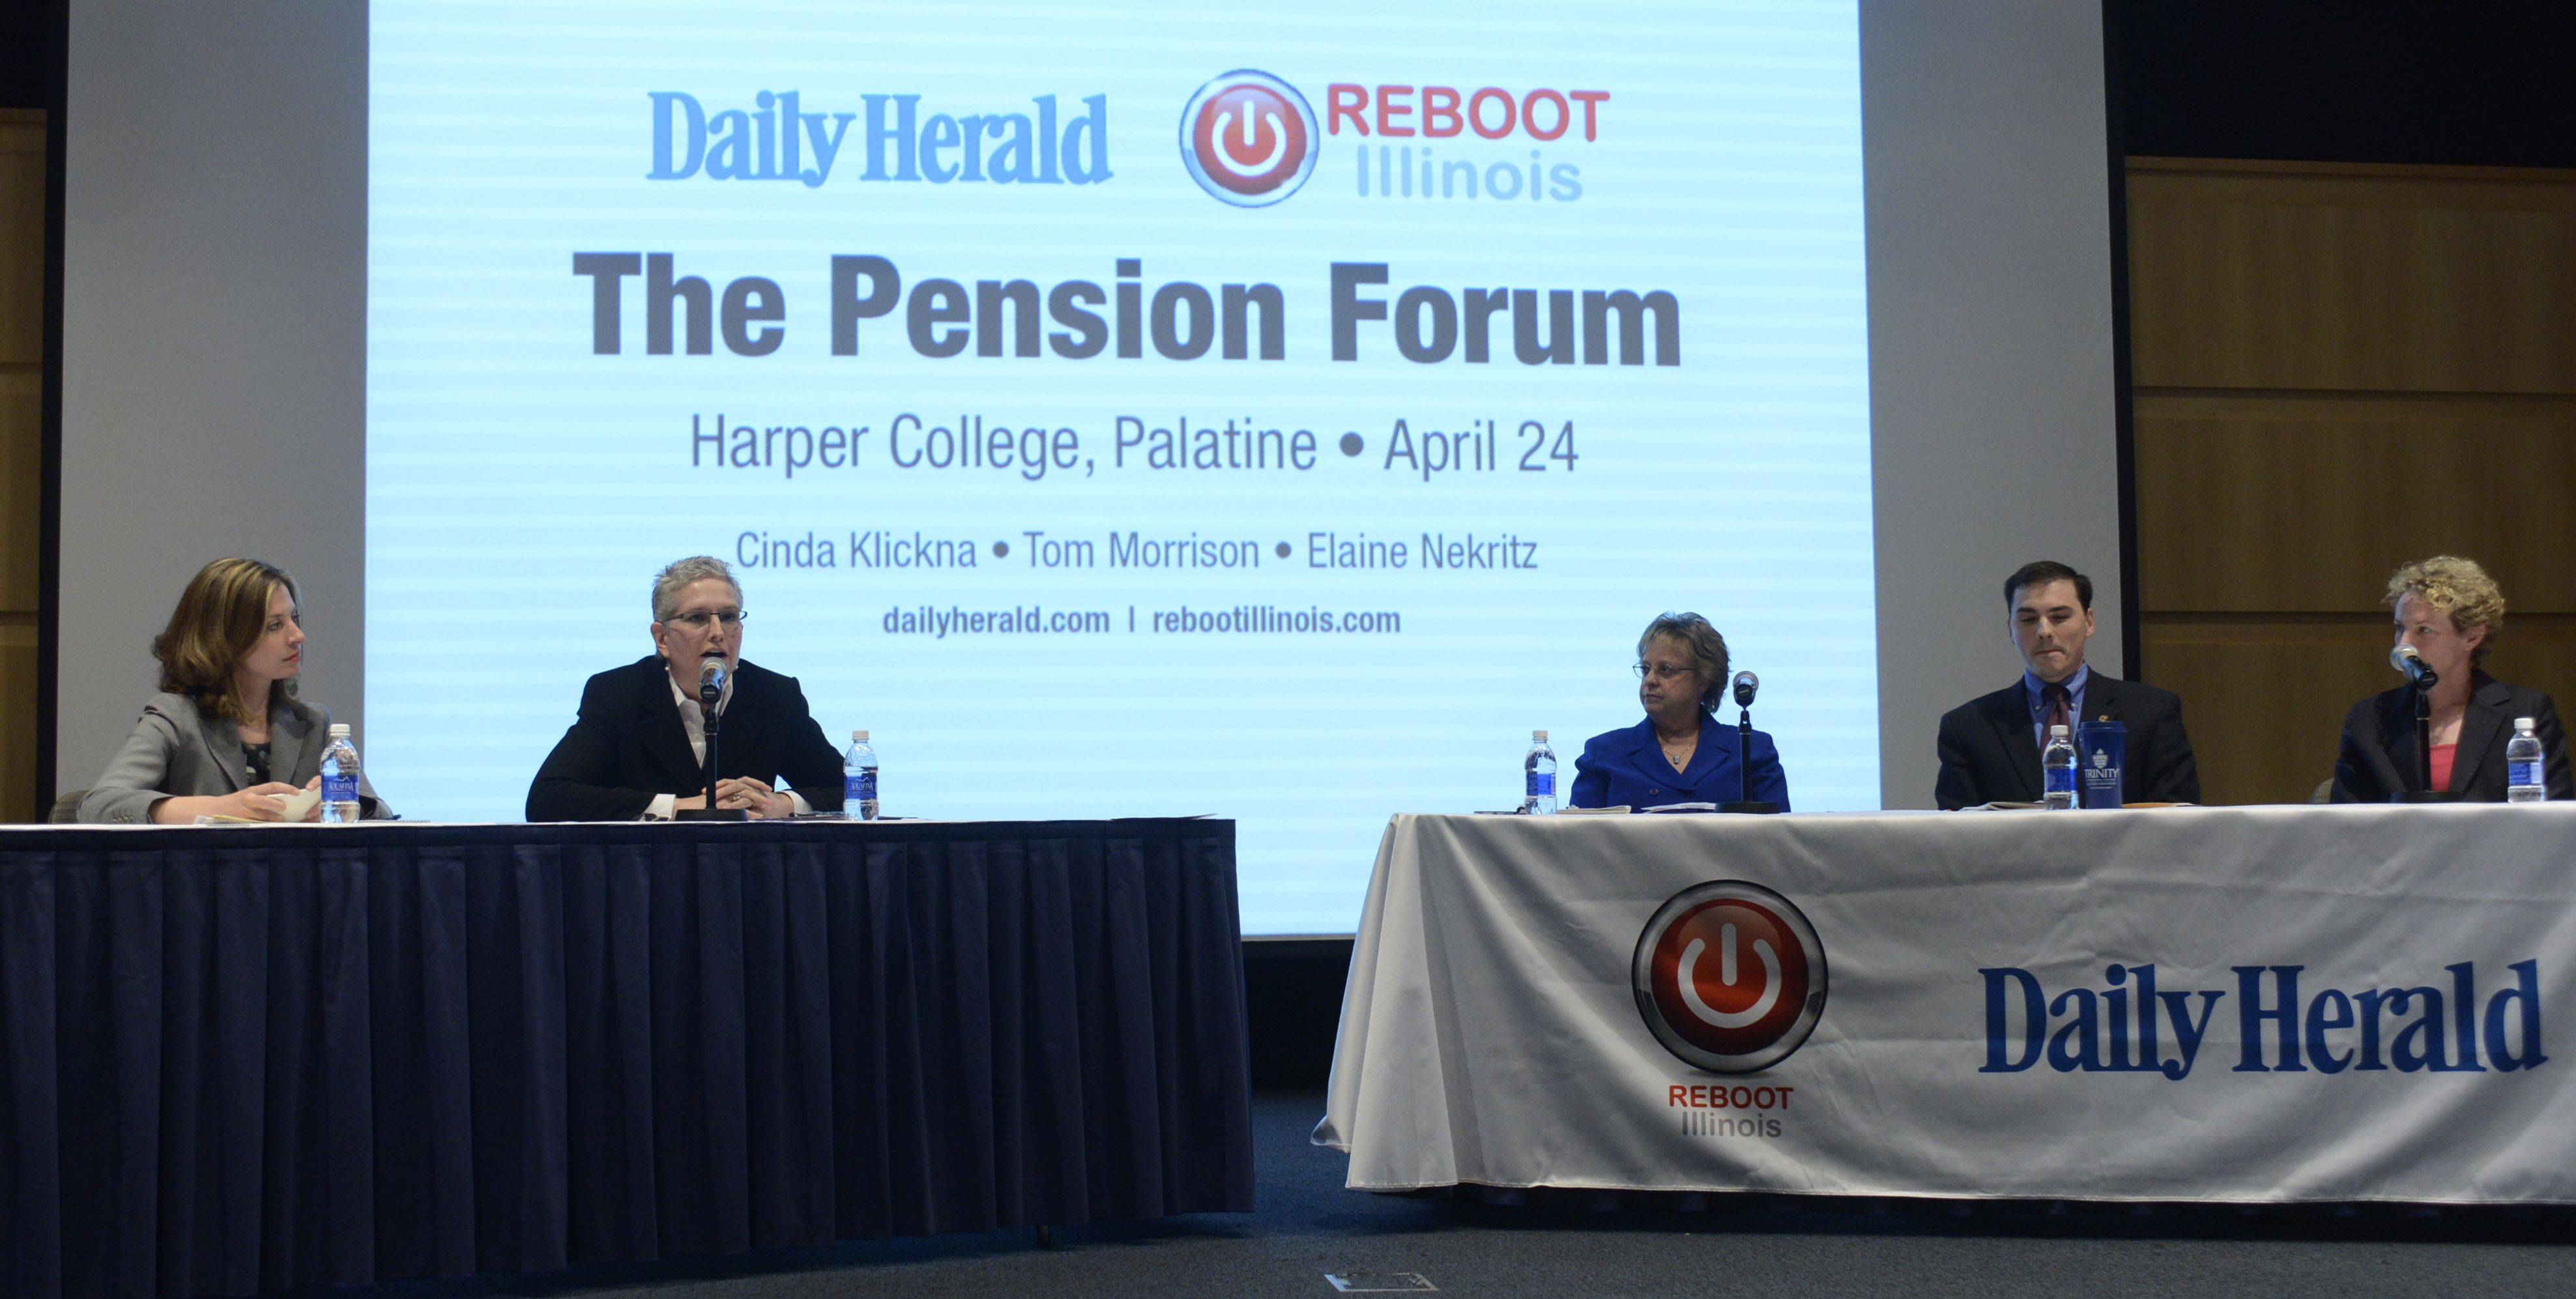 JOE LEWNARD/jlewnard@dailyherald.com � Left to right, Kerry Lester, Daily Herald political editor, Madeleine Doubek, chief operating officer of Reboot Illinois, Cinda Klickna, Illinois Education Association president, and state representatives Tom Morrison and Elaine Nekritz took park in a pension reform forum sponsored by the Daily Herald and Reboot Illinois, held at Harper College in Palatine last month.